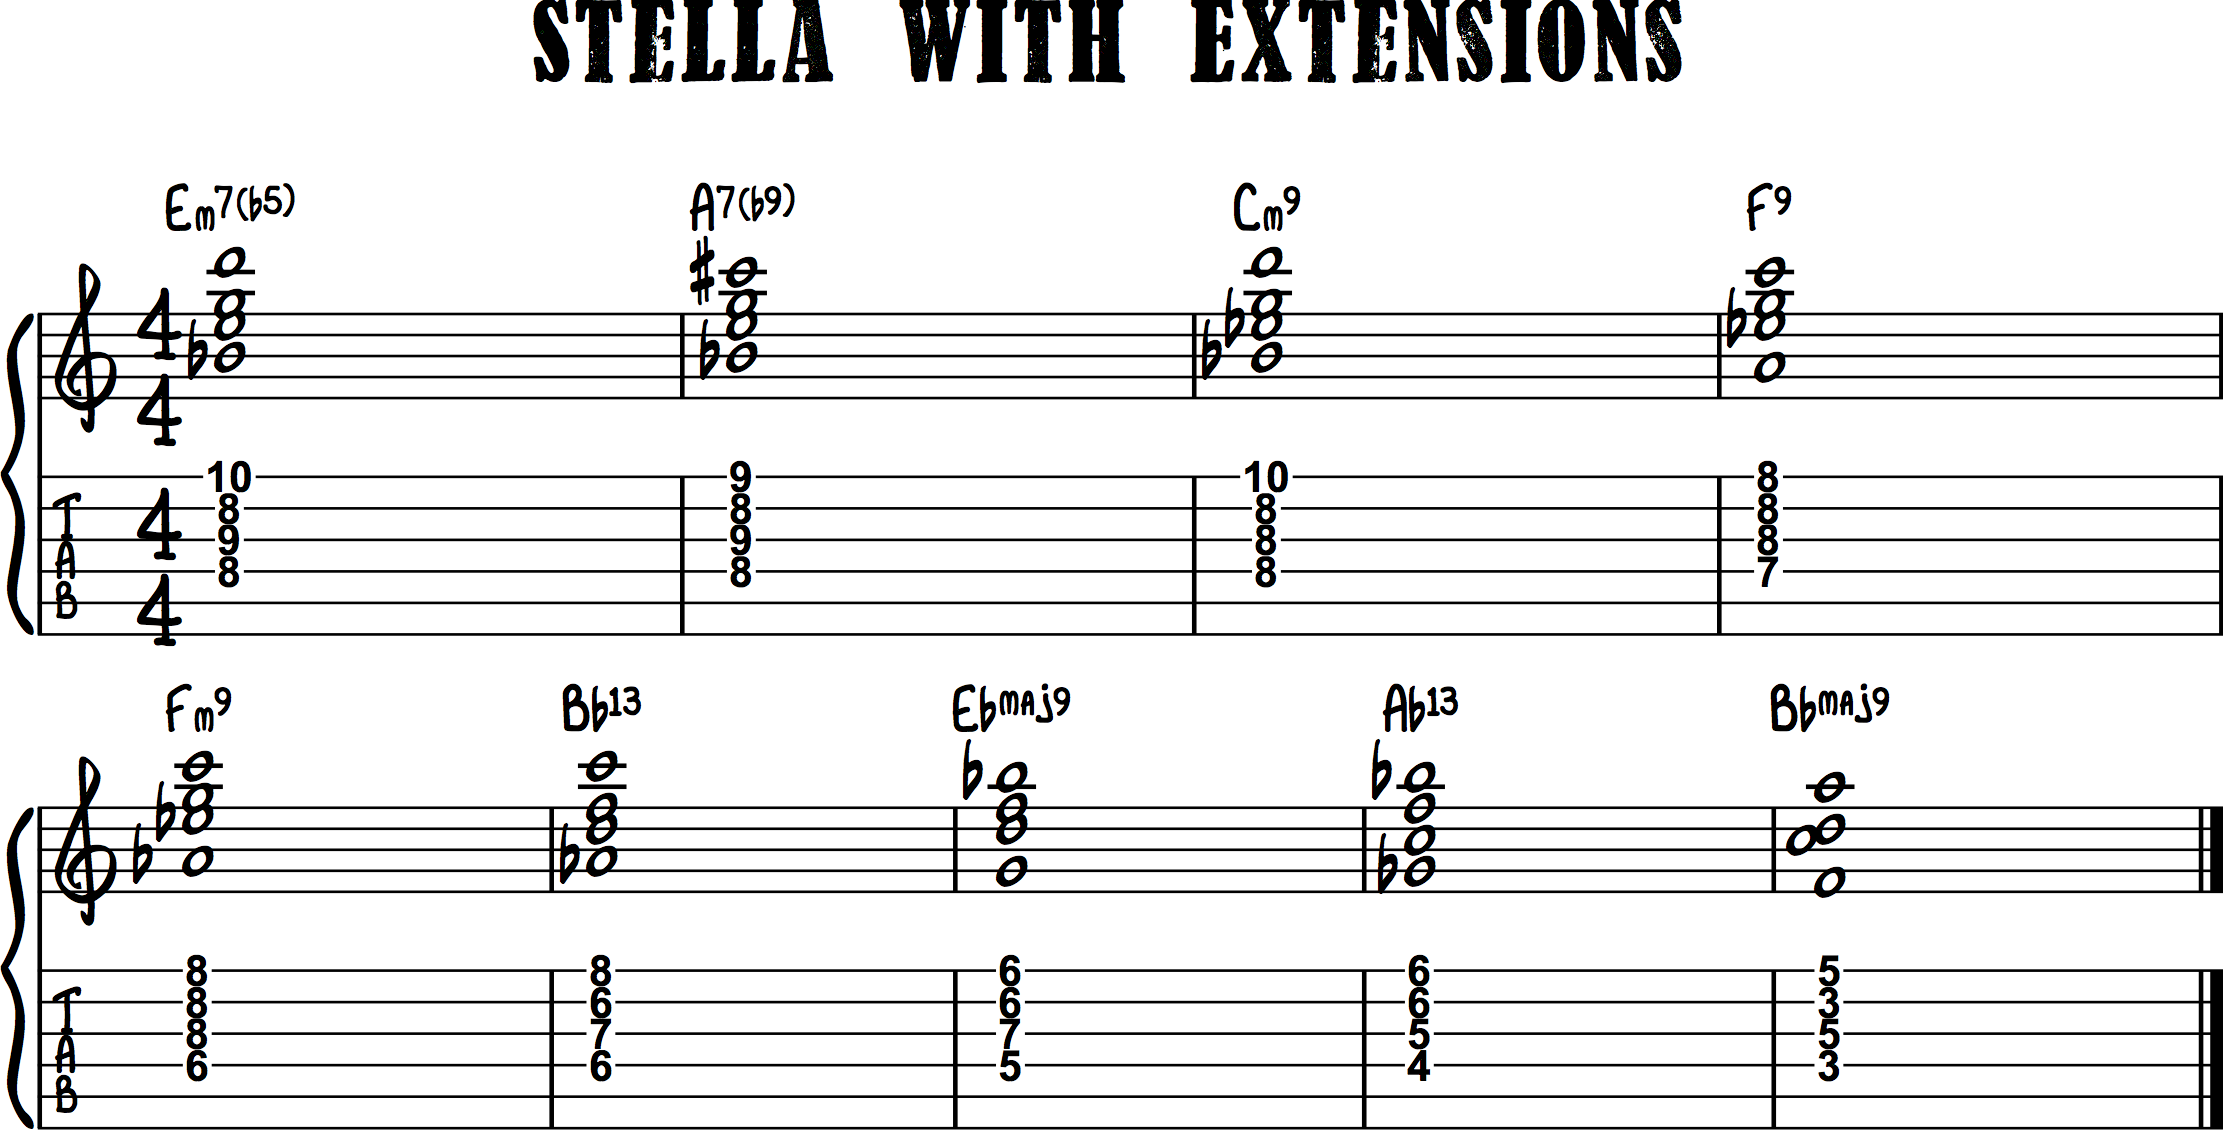 Drop 2 chords stella jazz guitar elements blog its ok if it changes but just make sure if it does change it still sounds musical hexwebz Image collections